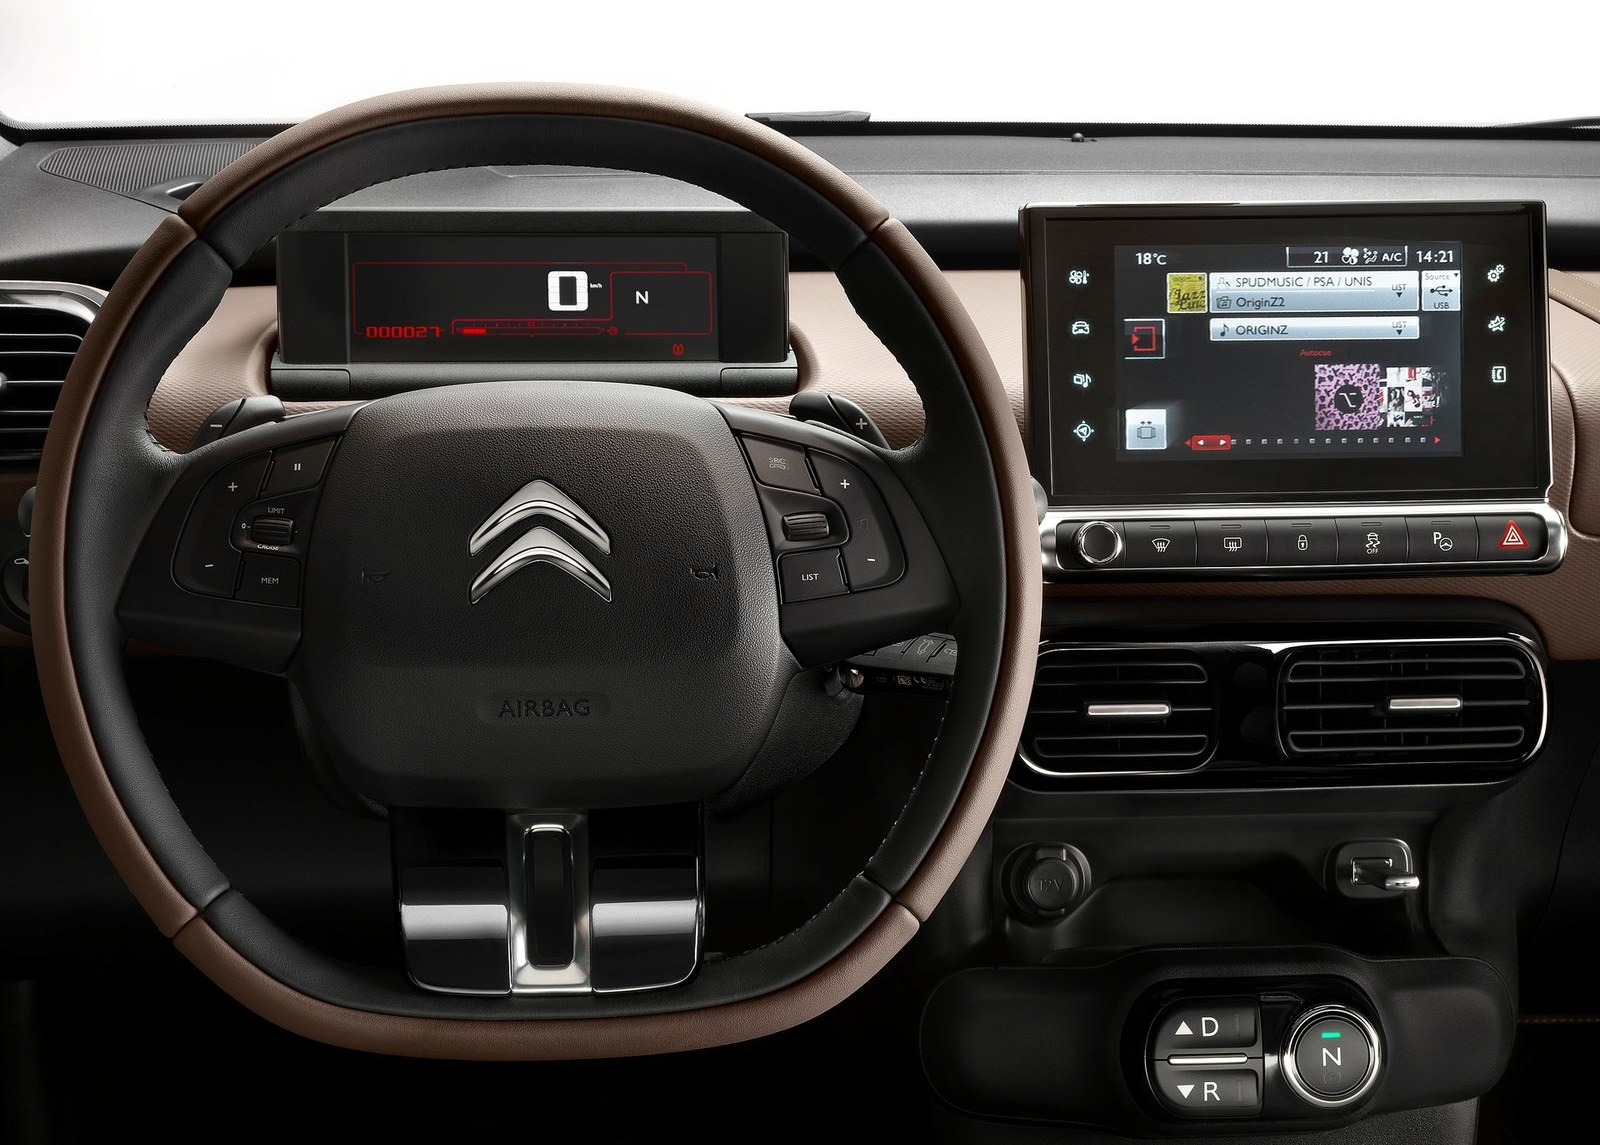 2015 Citroen C4 Cactus Streering and Speedometer